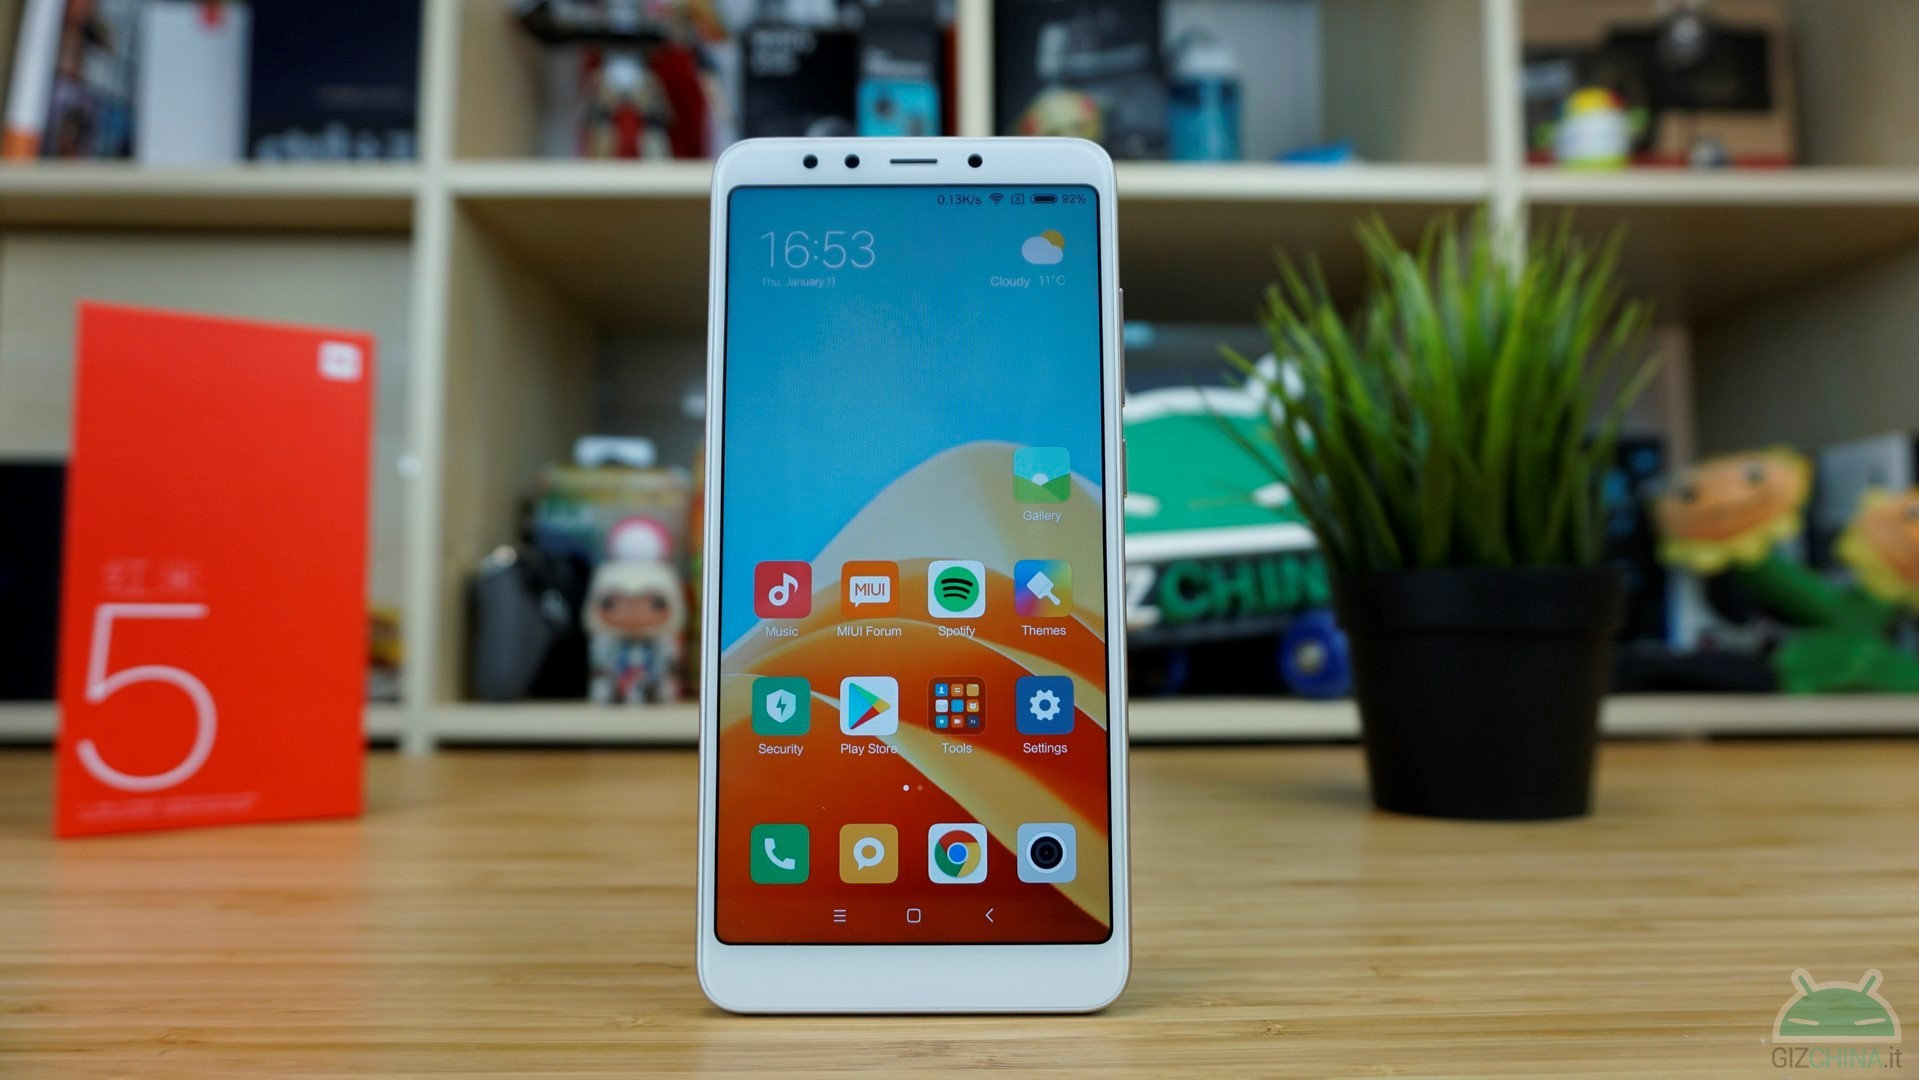 Xiaomi Redmi 5: how to install TWRP and get root with Magisk